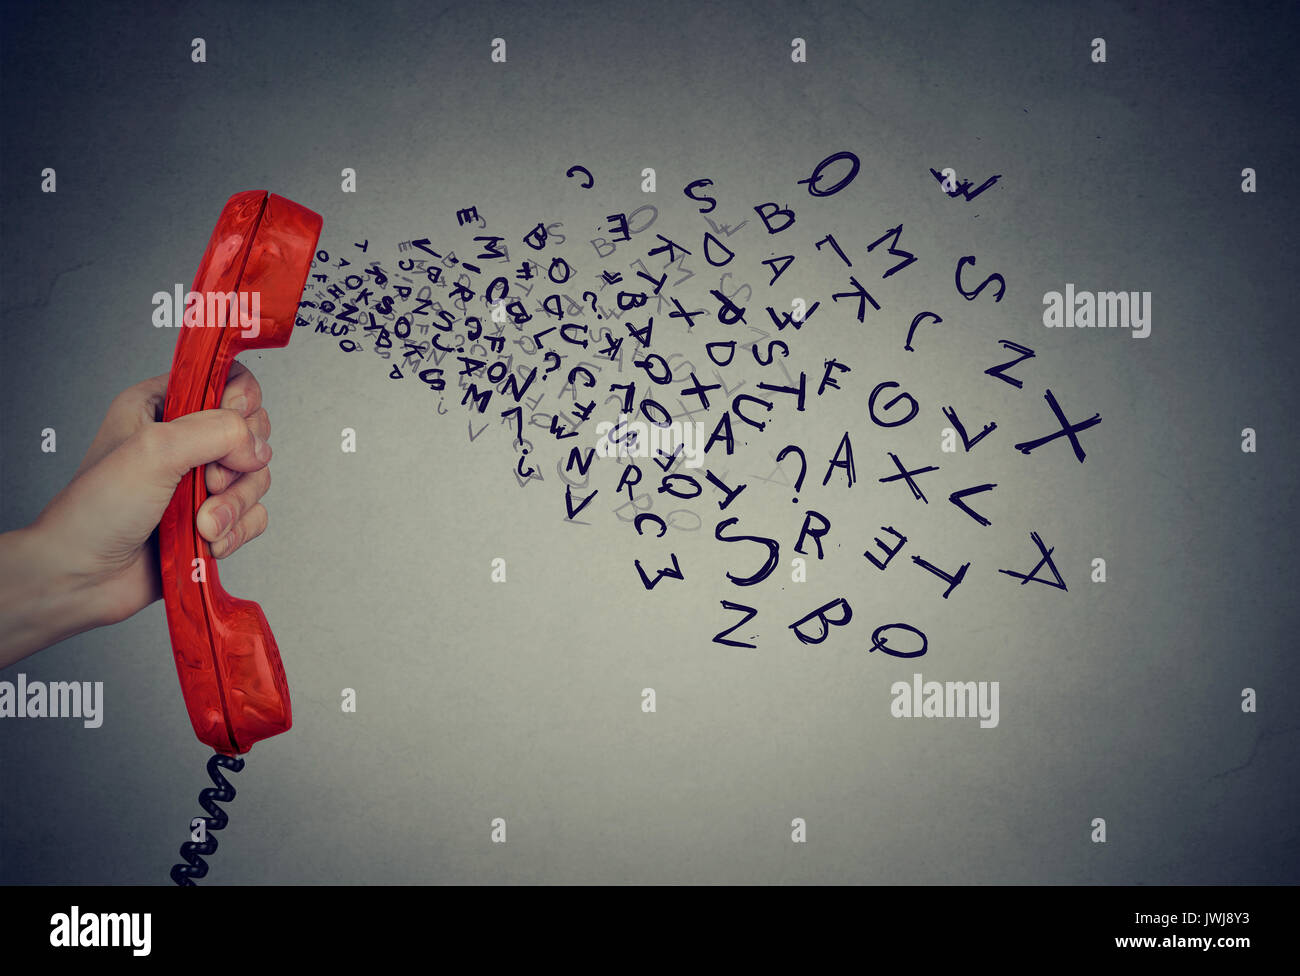 Hand holding telephone handset with alphabet letters coming out. Too many words during conversation concept - Stock Image